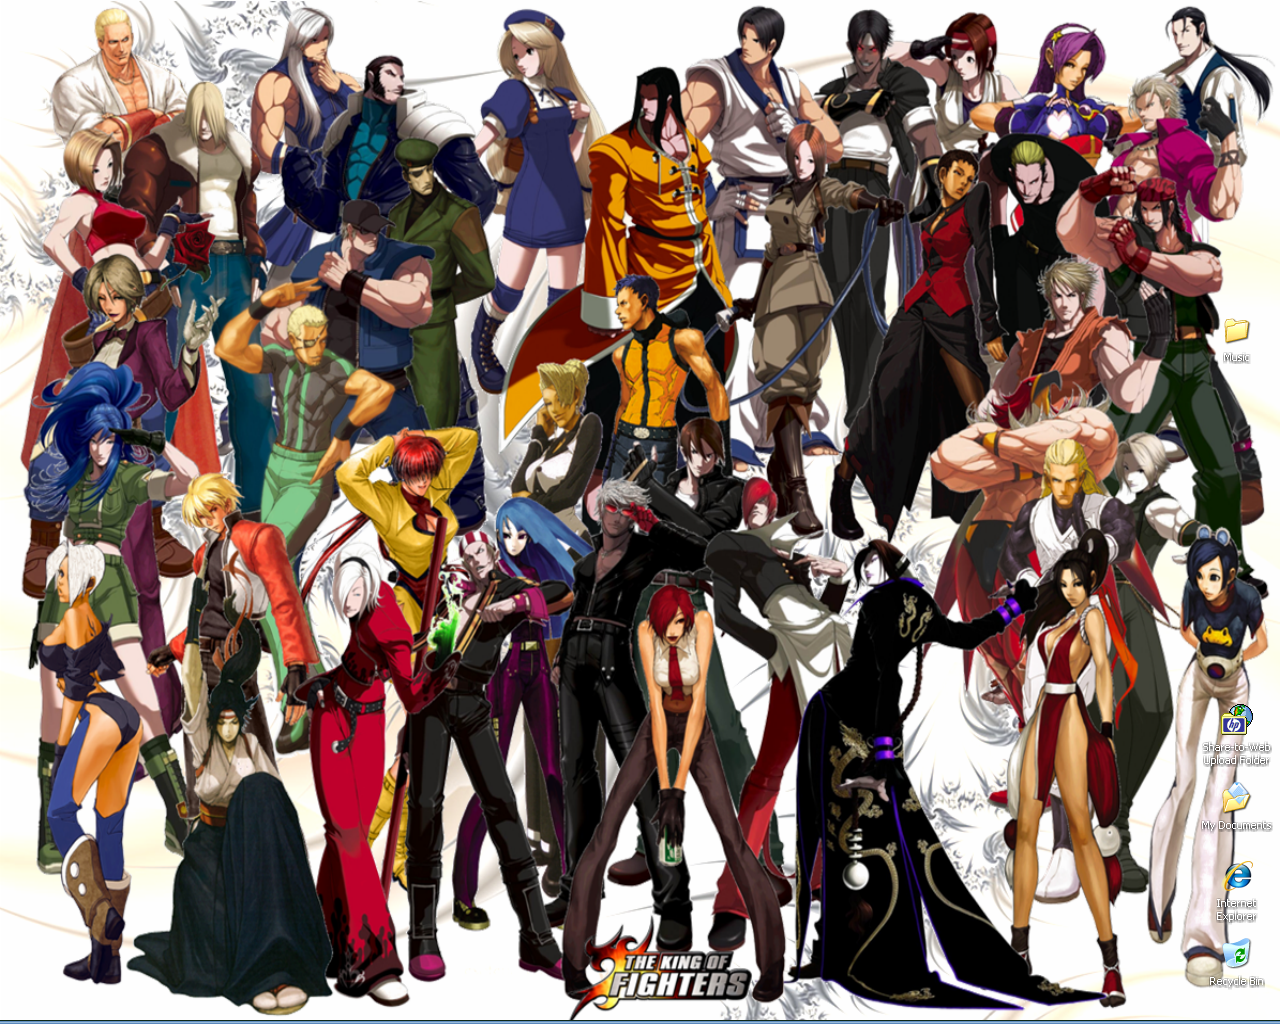 Come scaricare The King of Fighters per Android e Blackberry 1